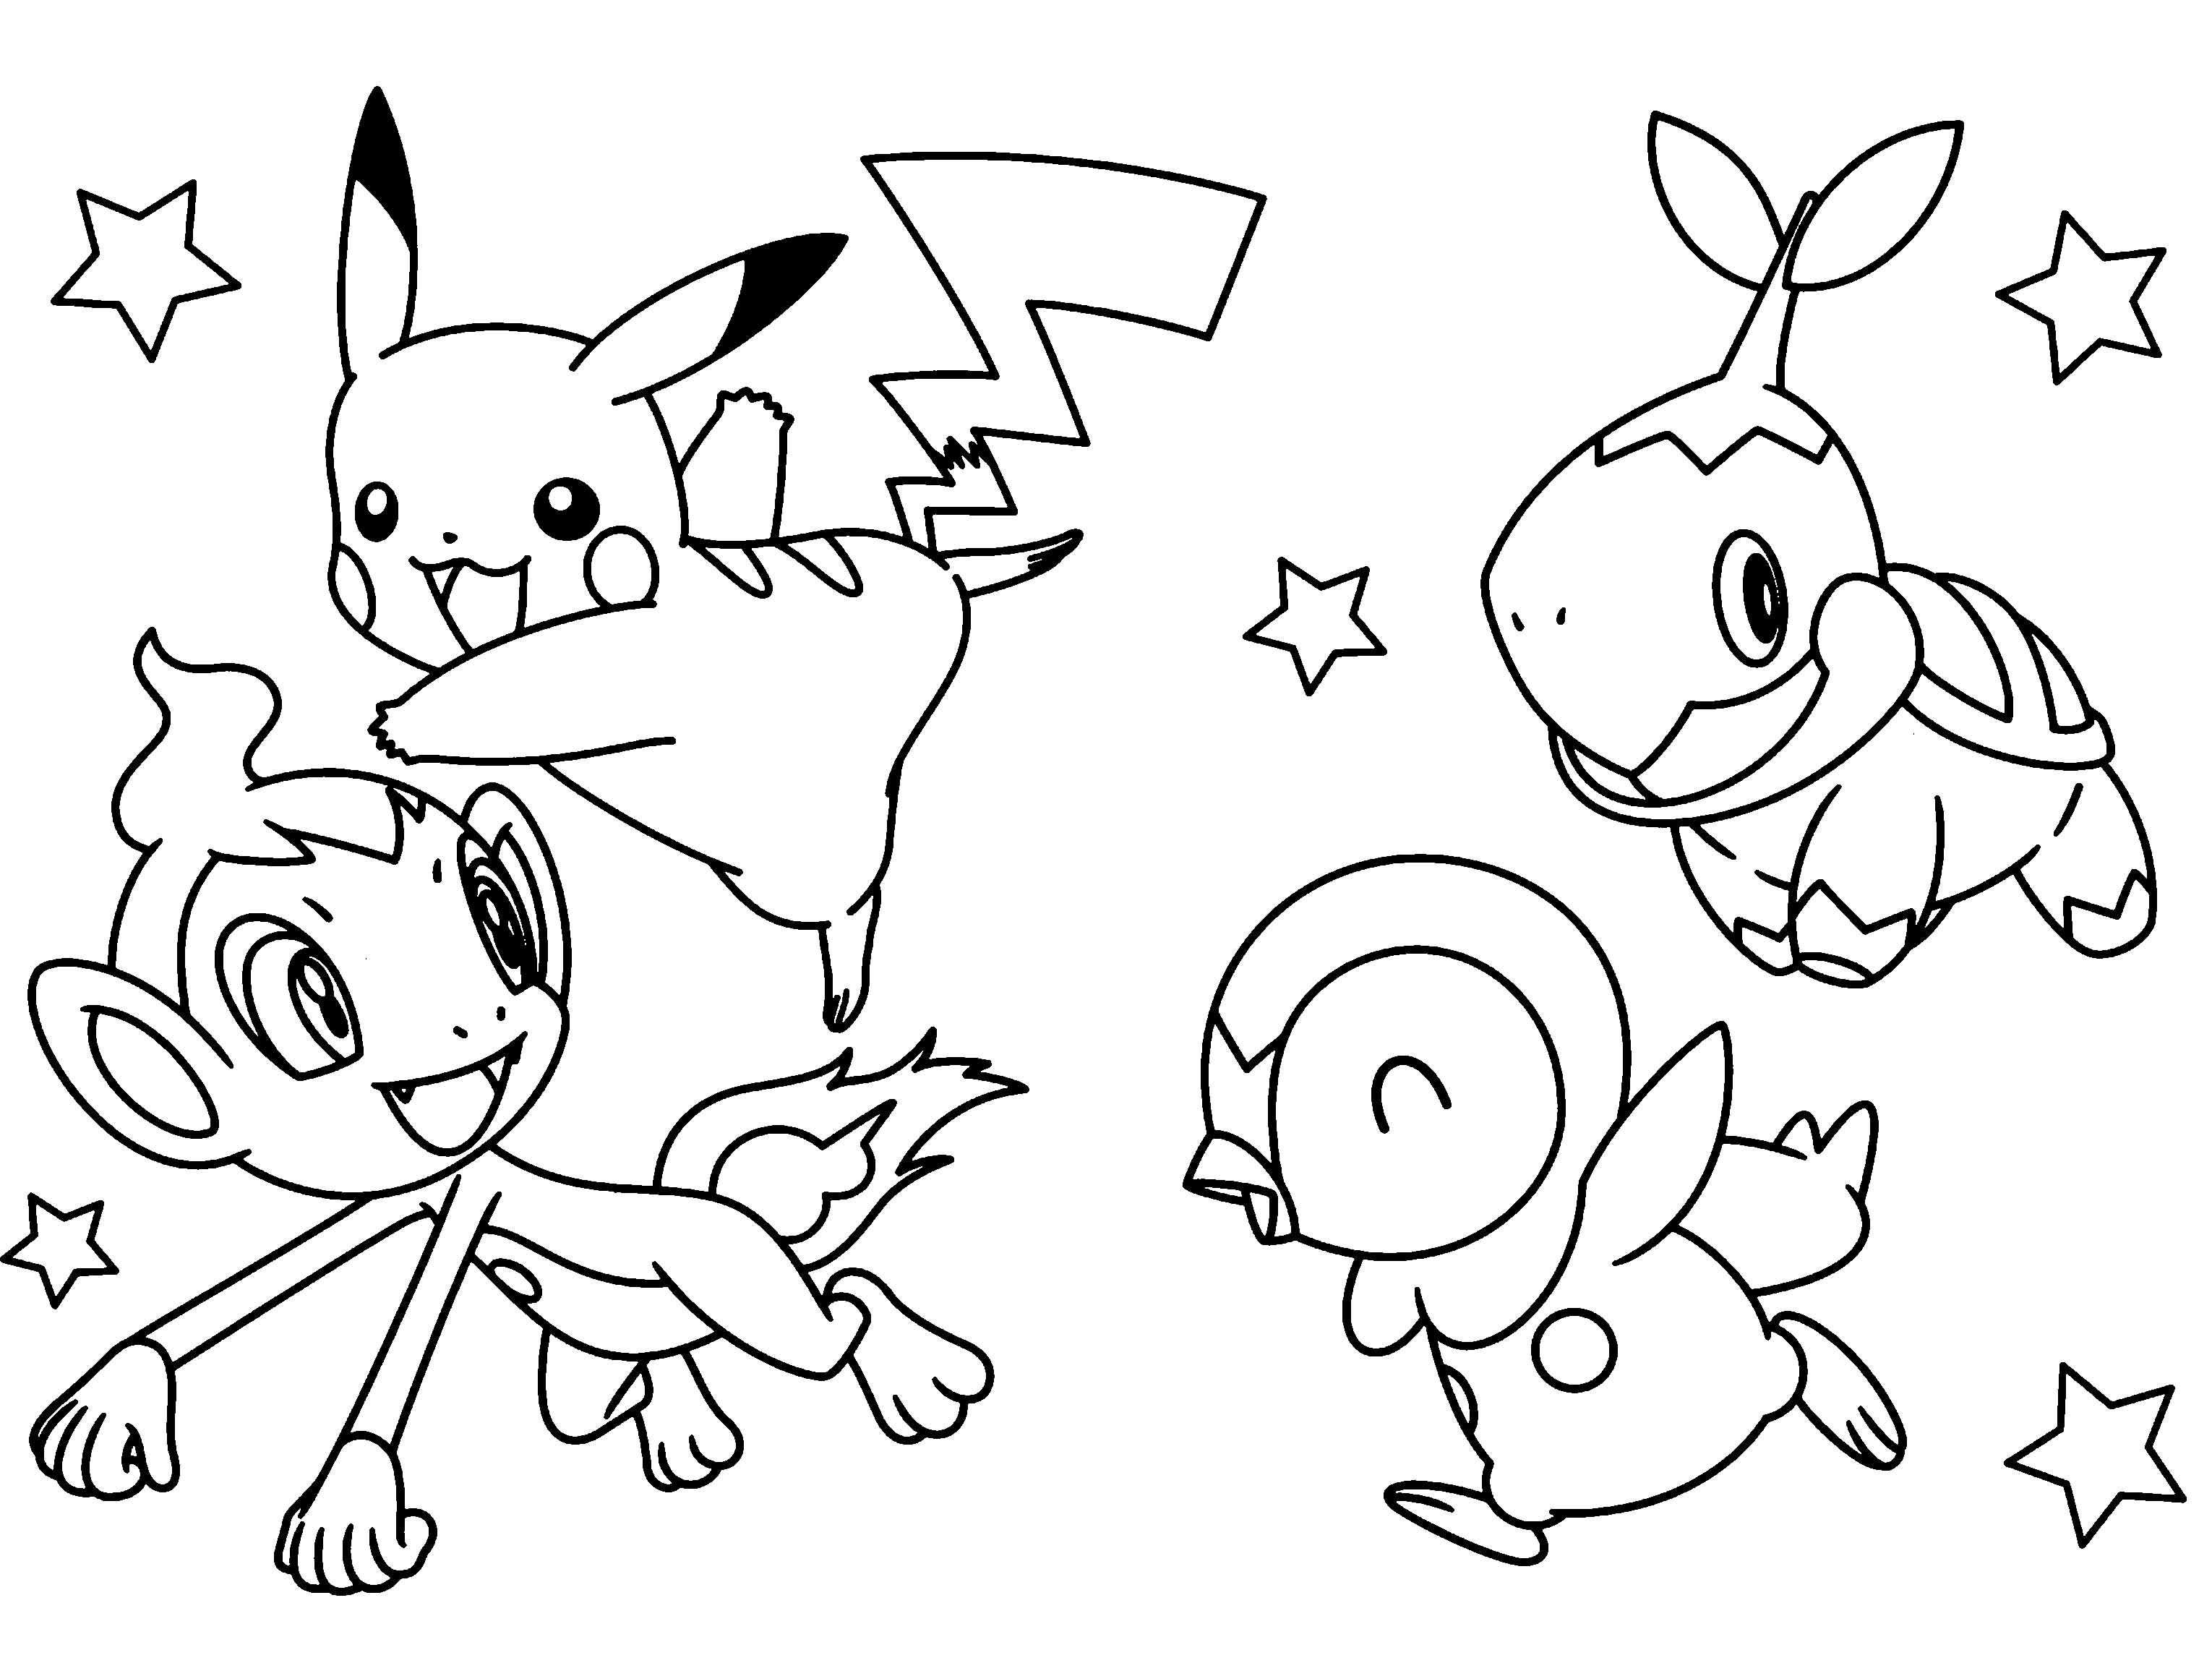 The Four Pokemon Are Cute And Great Coloring Page ...